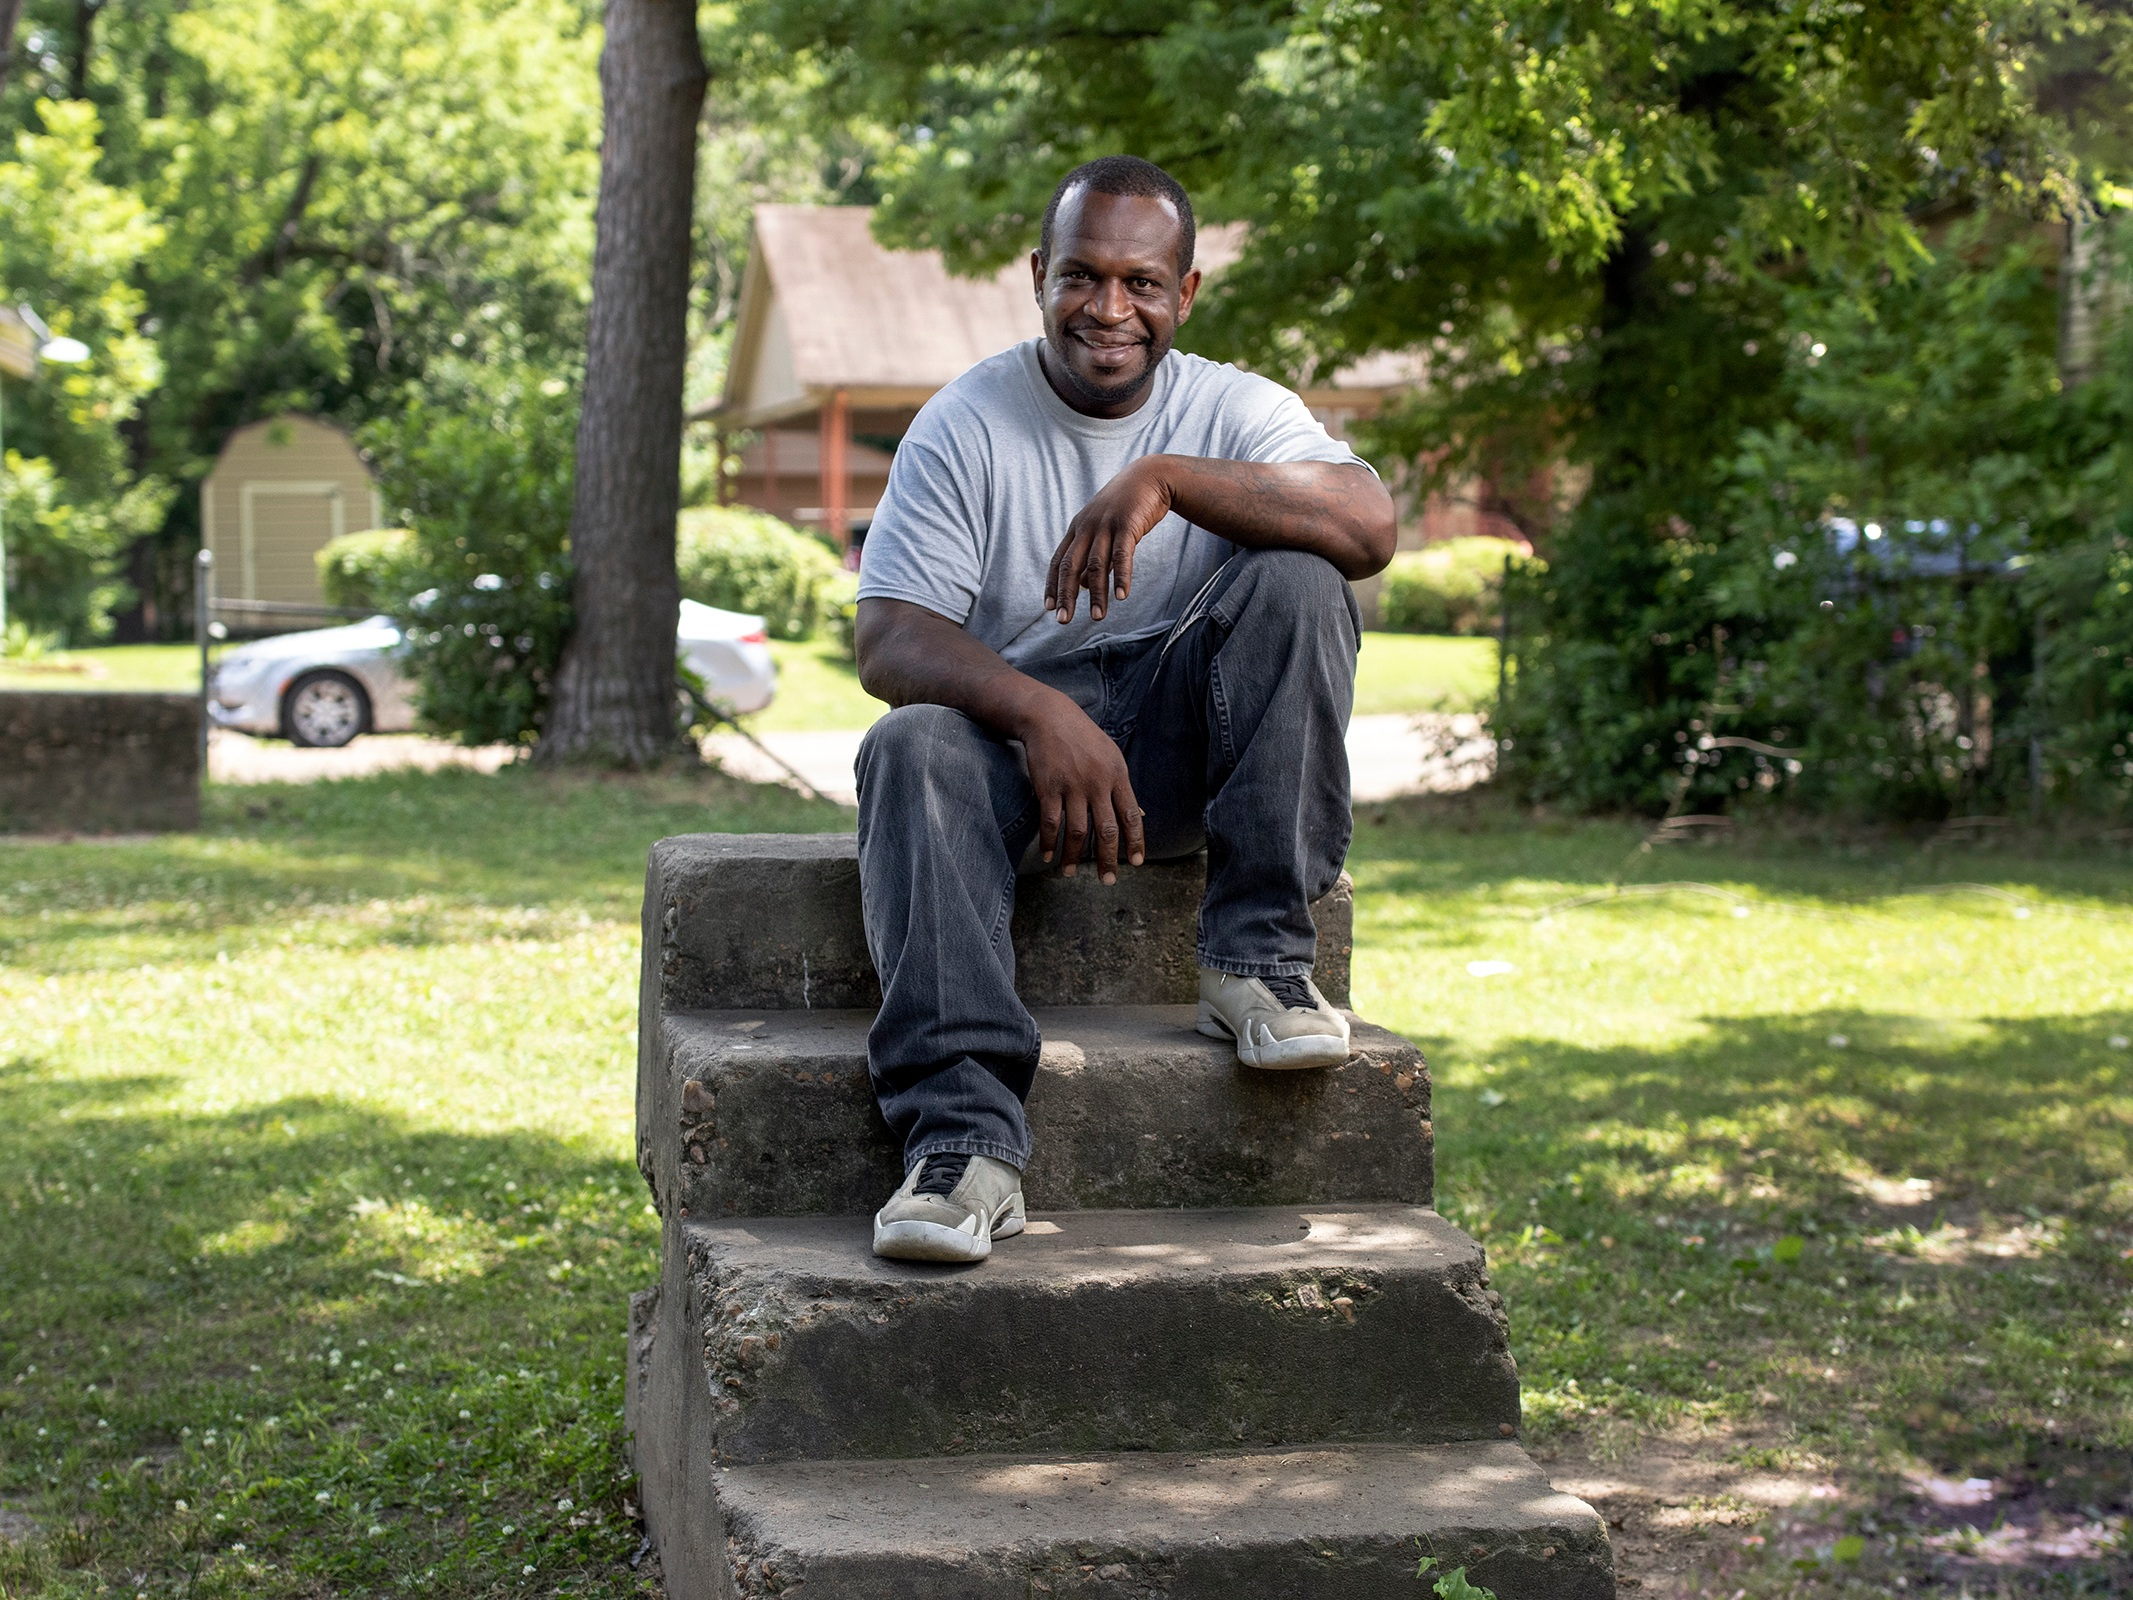 Marcellus Gray, 42, a local barber in Greenwood, Miss., is all too familiar with gun culture. He works to help kids shy away from street life.   Charles A. Smith/Mississippi Center for Investigative Reporting.